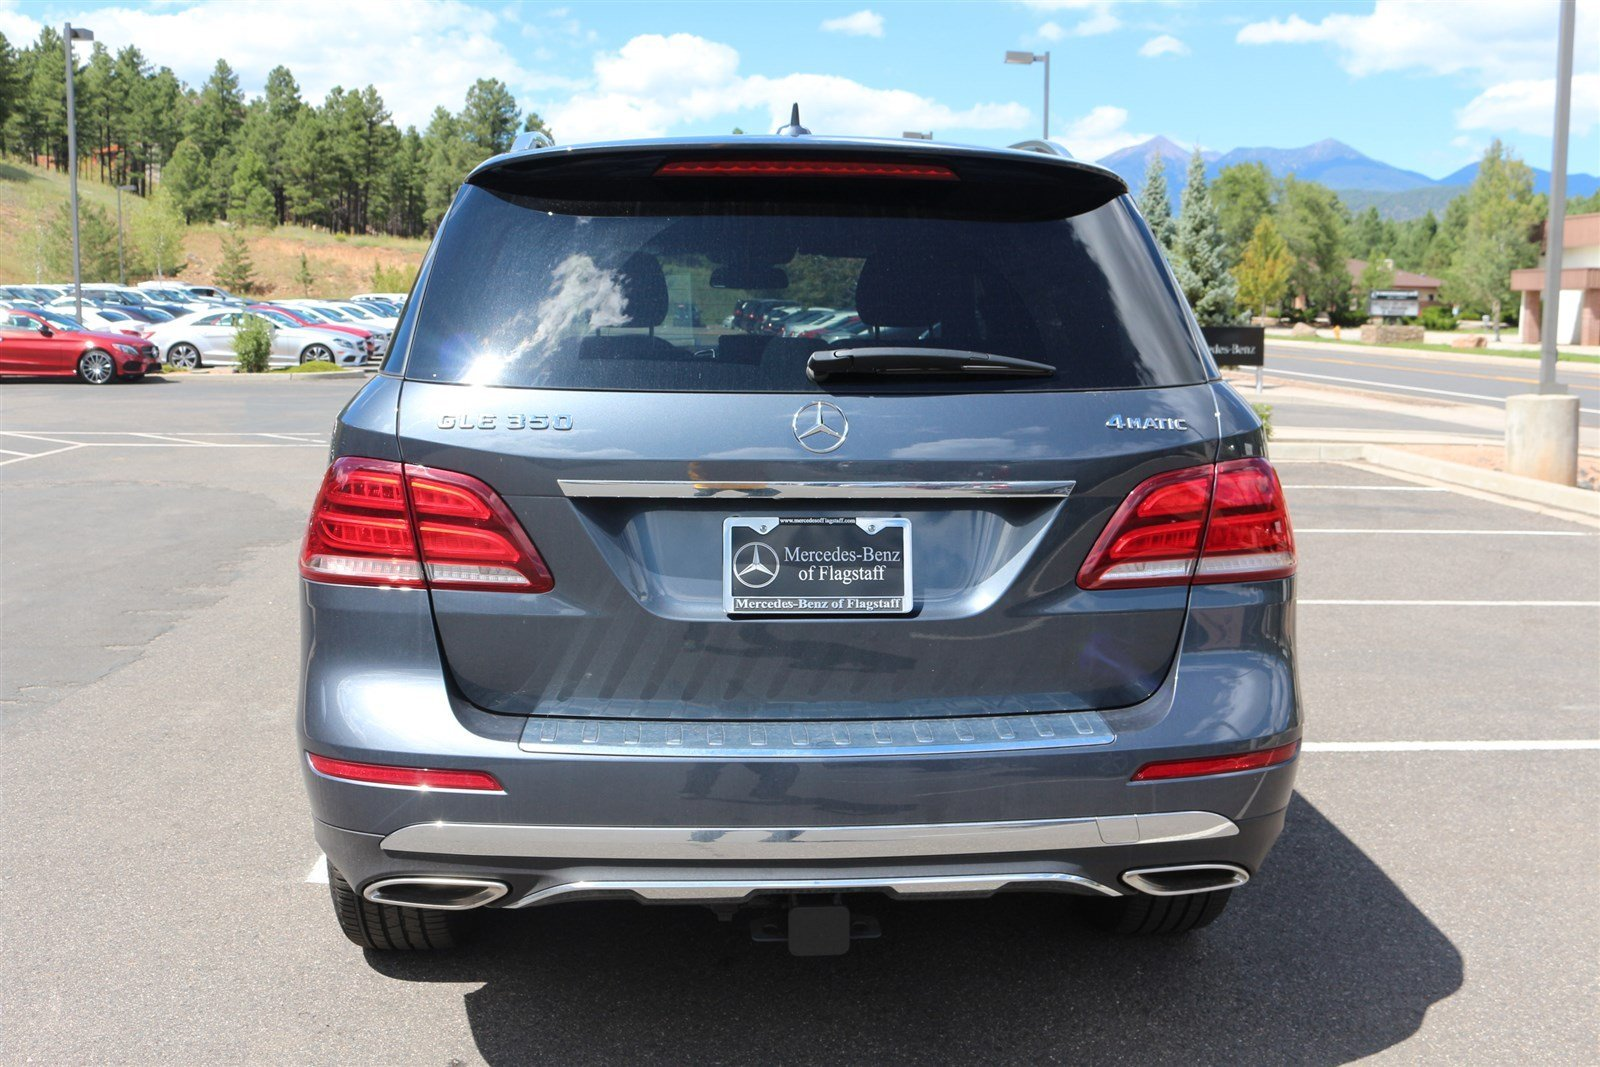 New 2016 mercedes benz gle gle350 suv in flagstaff mg1343 for Mercedes benz of flagstaff